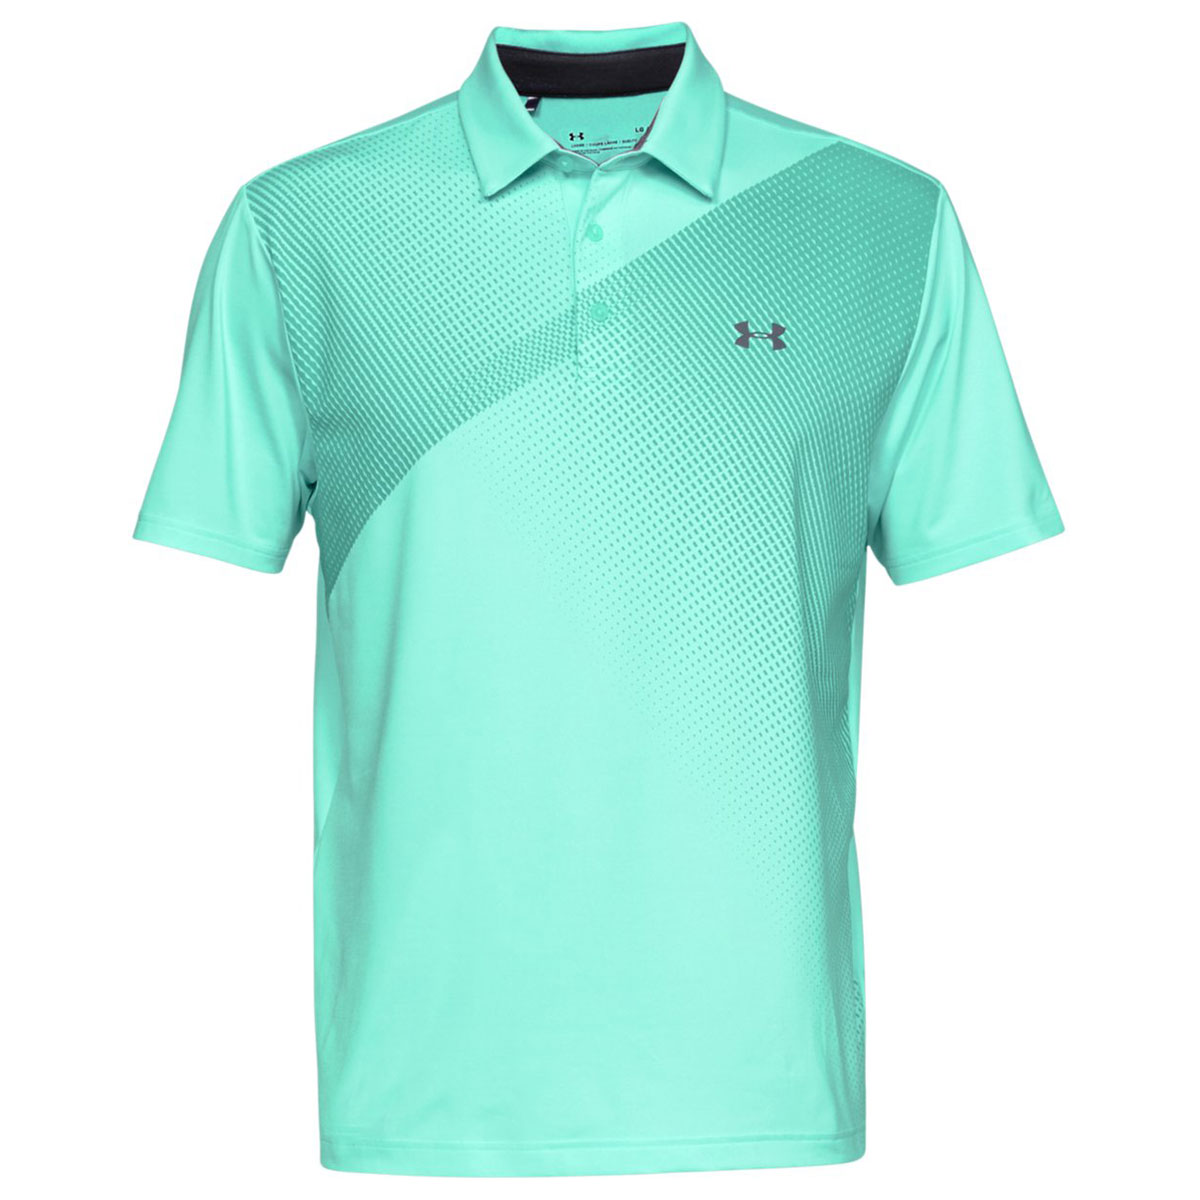 Under-Armour-Mens-2019-Playoff-Polo-2-0-Breathable-Light-Stretch-Polo-Shirt thumbnail 93